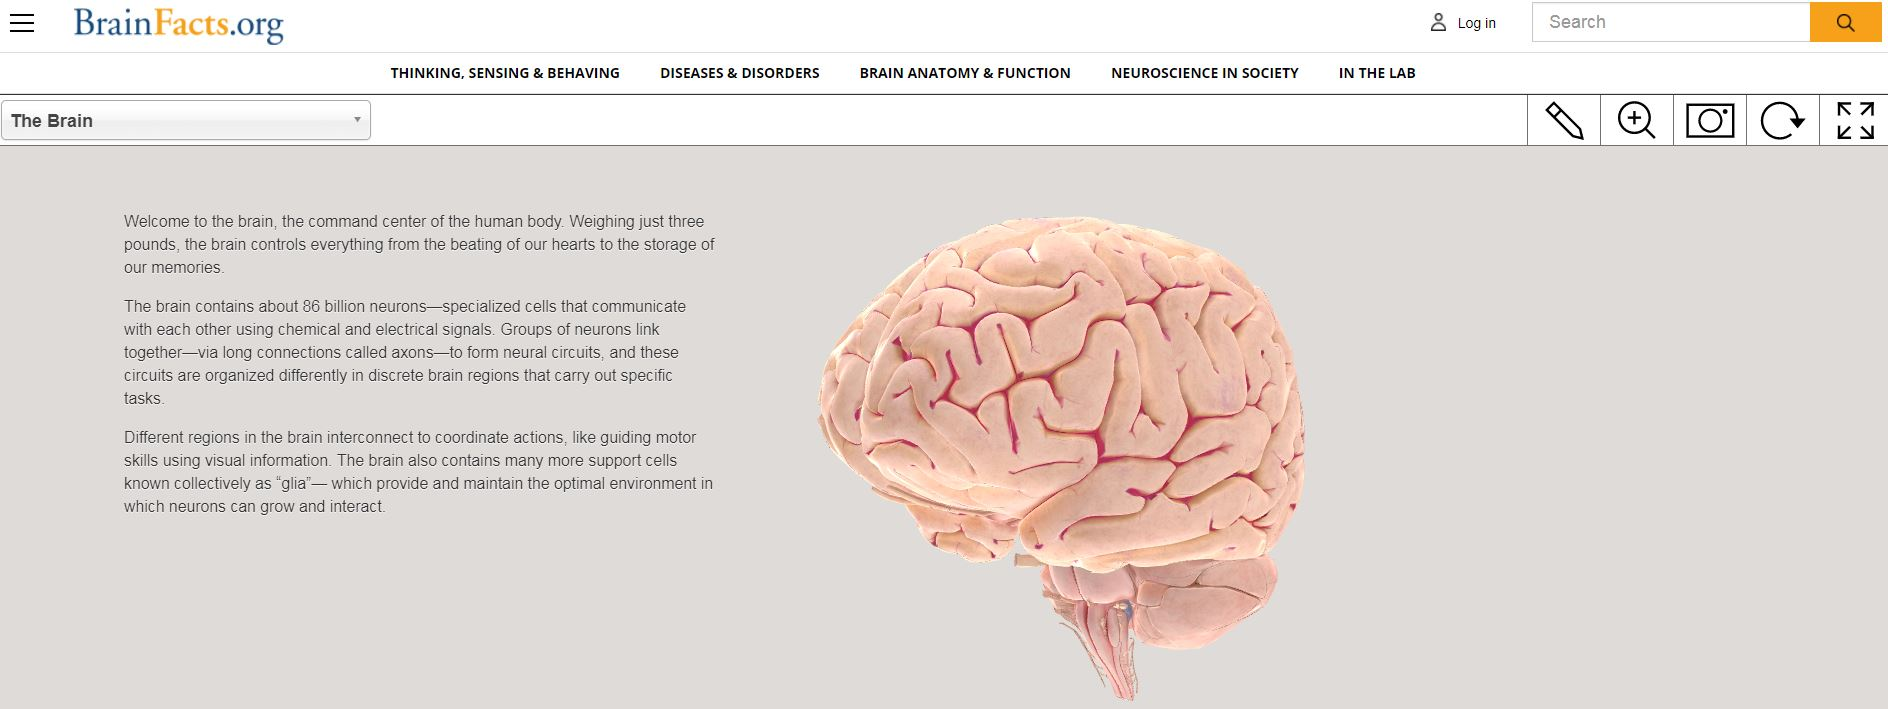 Neuroscience teaching and learning in schools | The British ...